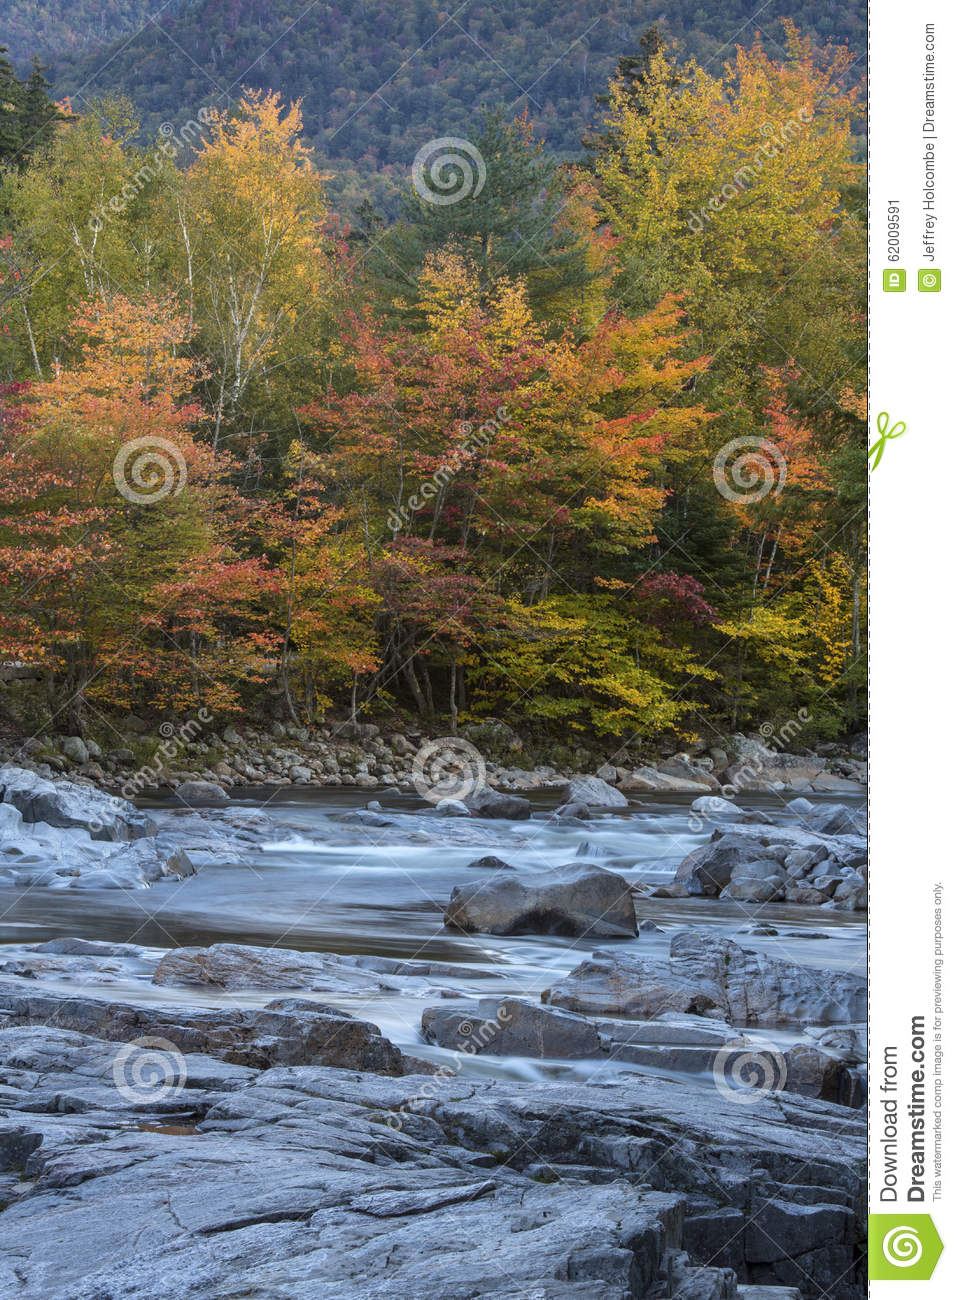 Rock And Swift Water In A New Hampshire River Stock Image